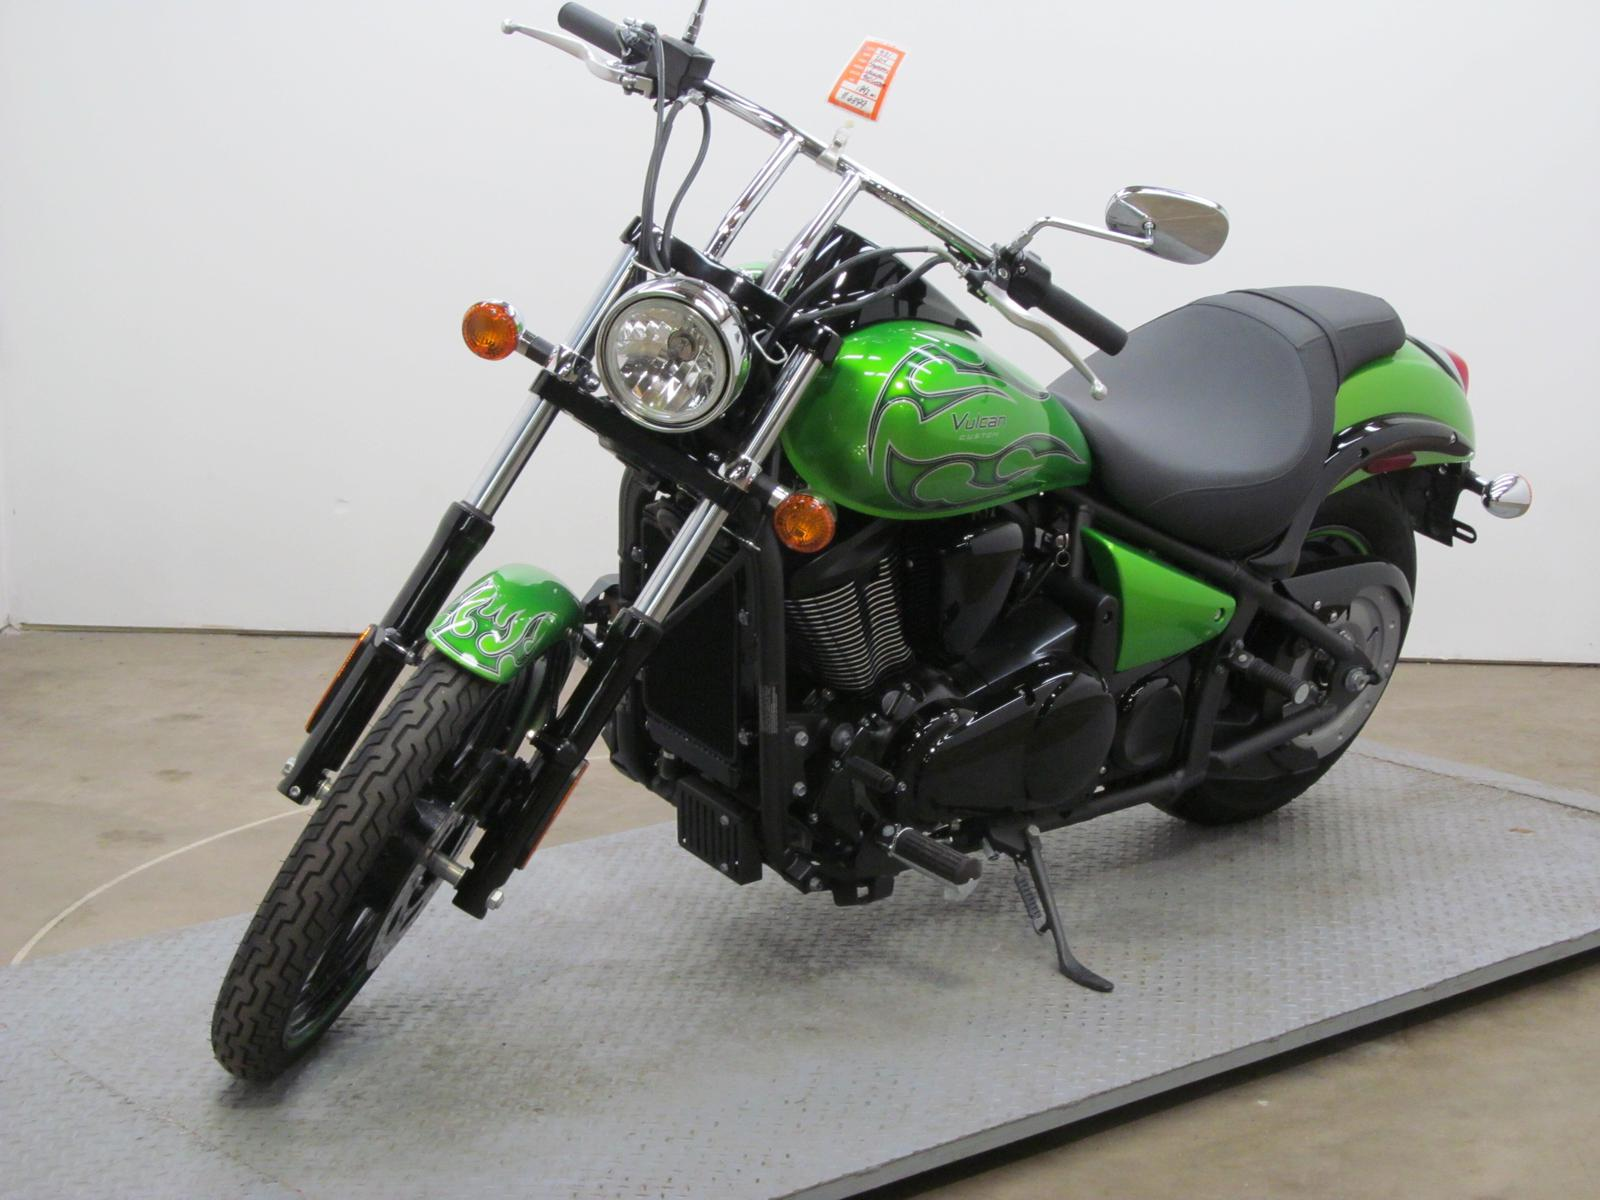 2014 Kawasaki Vulcan 900 Custom For Sale In Baxter Mn Brothers Fuel Filter Used 8 18 028